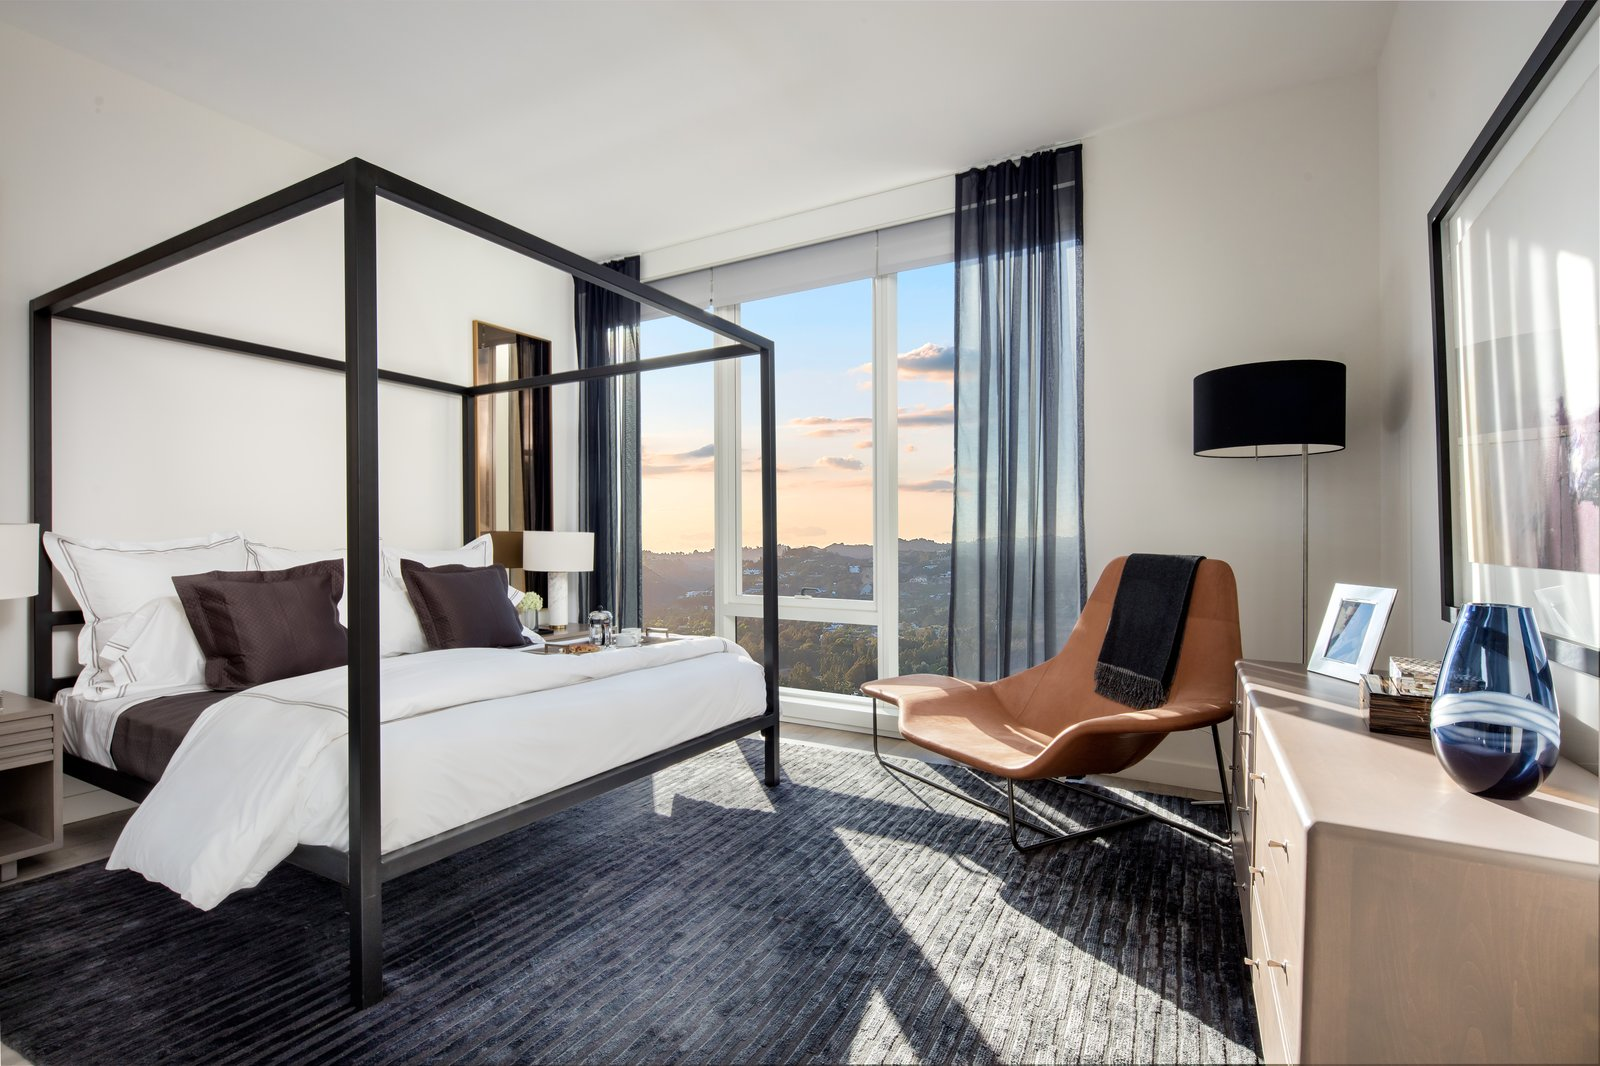 From the living area to the sprawling bedrooms and bathrooms, Mitchell Freedland's vision was to seduce the eye and calm the senses, and in that his palette succeeds while also successfully creating the feeling of home.  Ten Thousand Unveils First Look at Life Inside the Elegant Los Angeles Tower